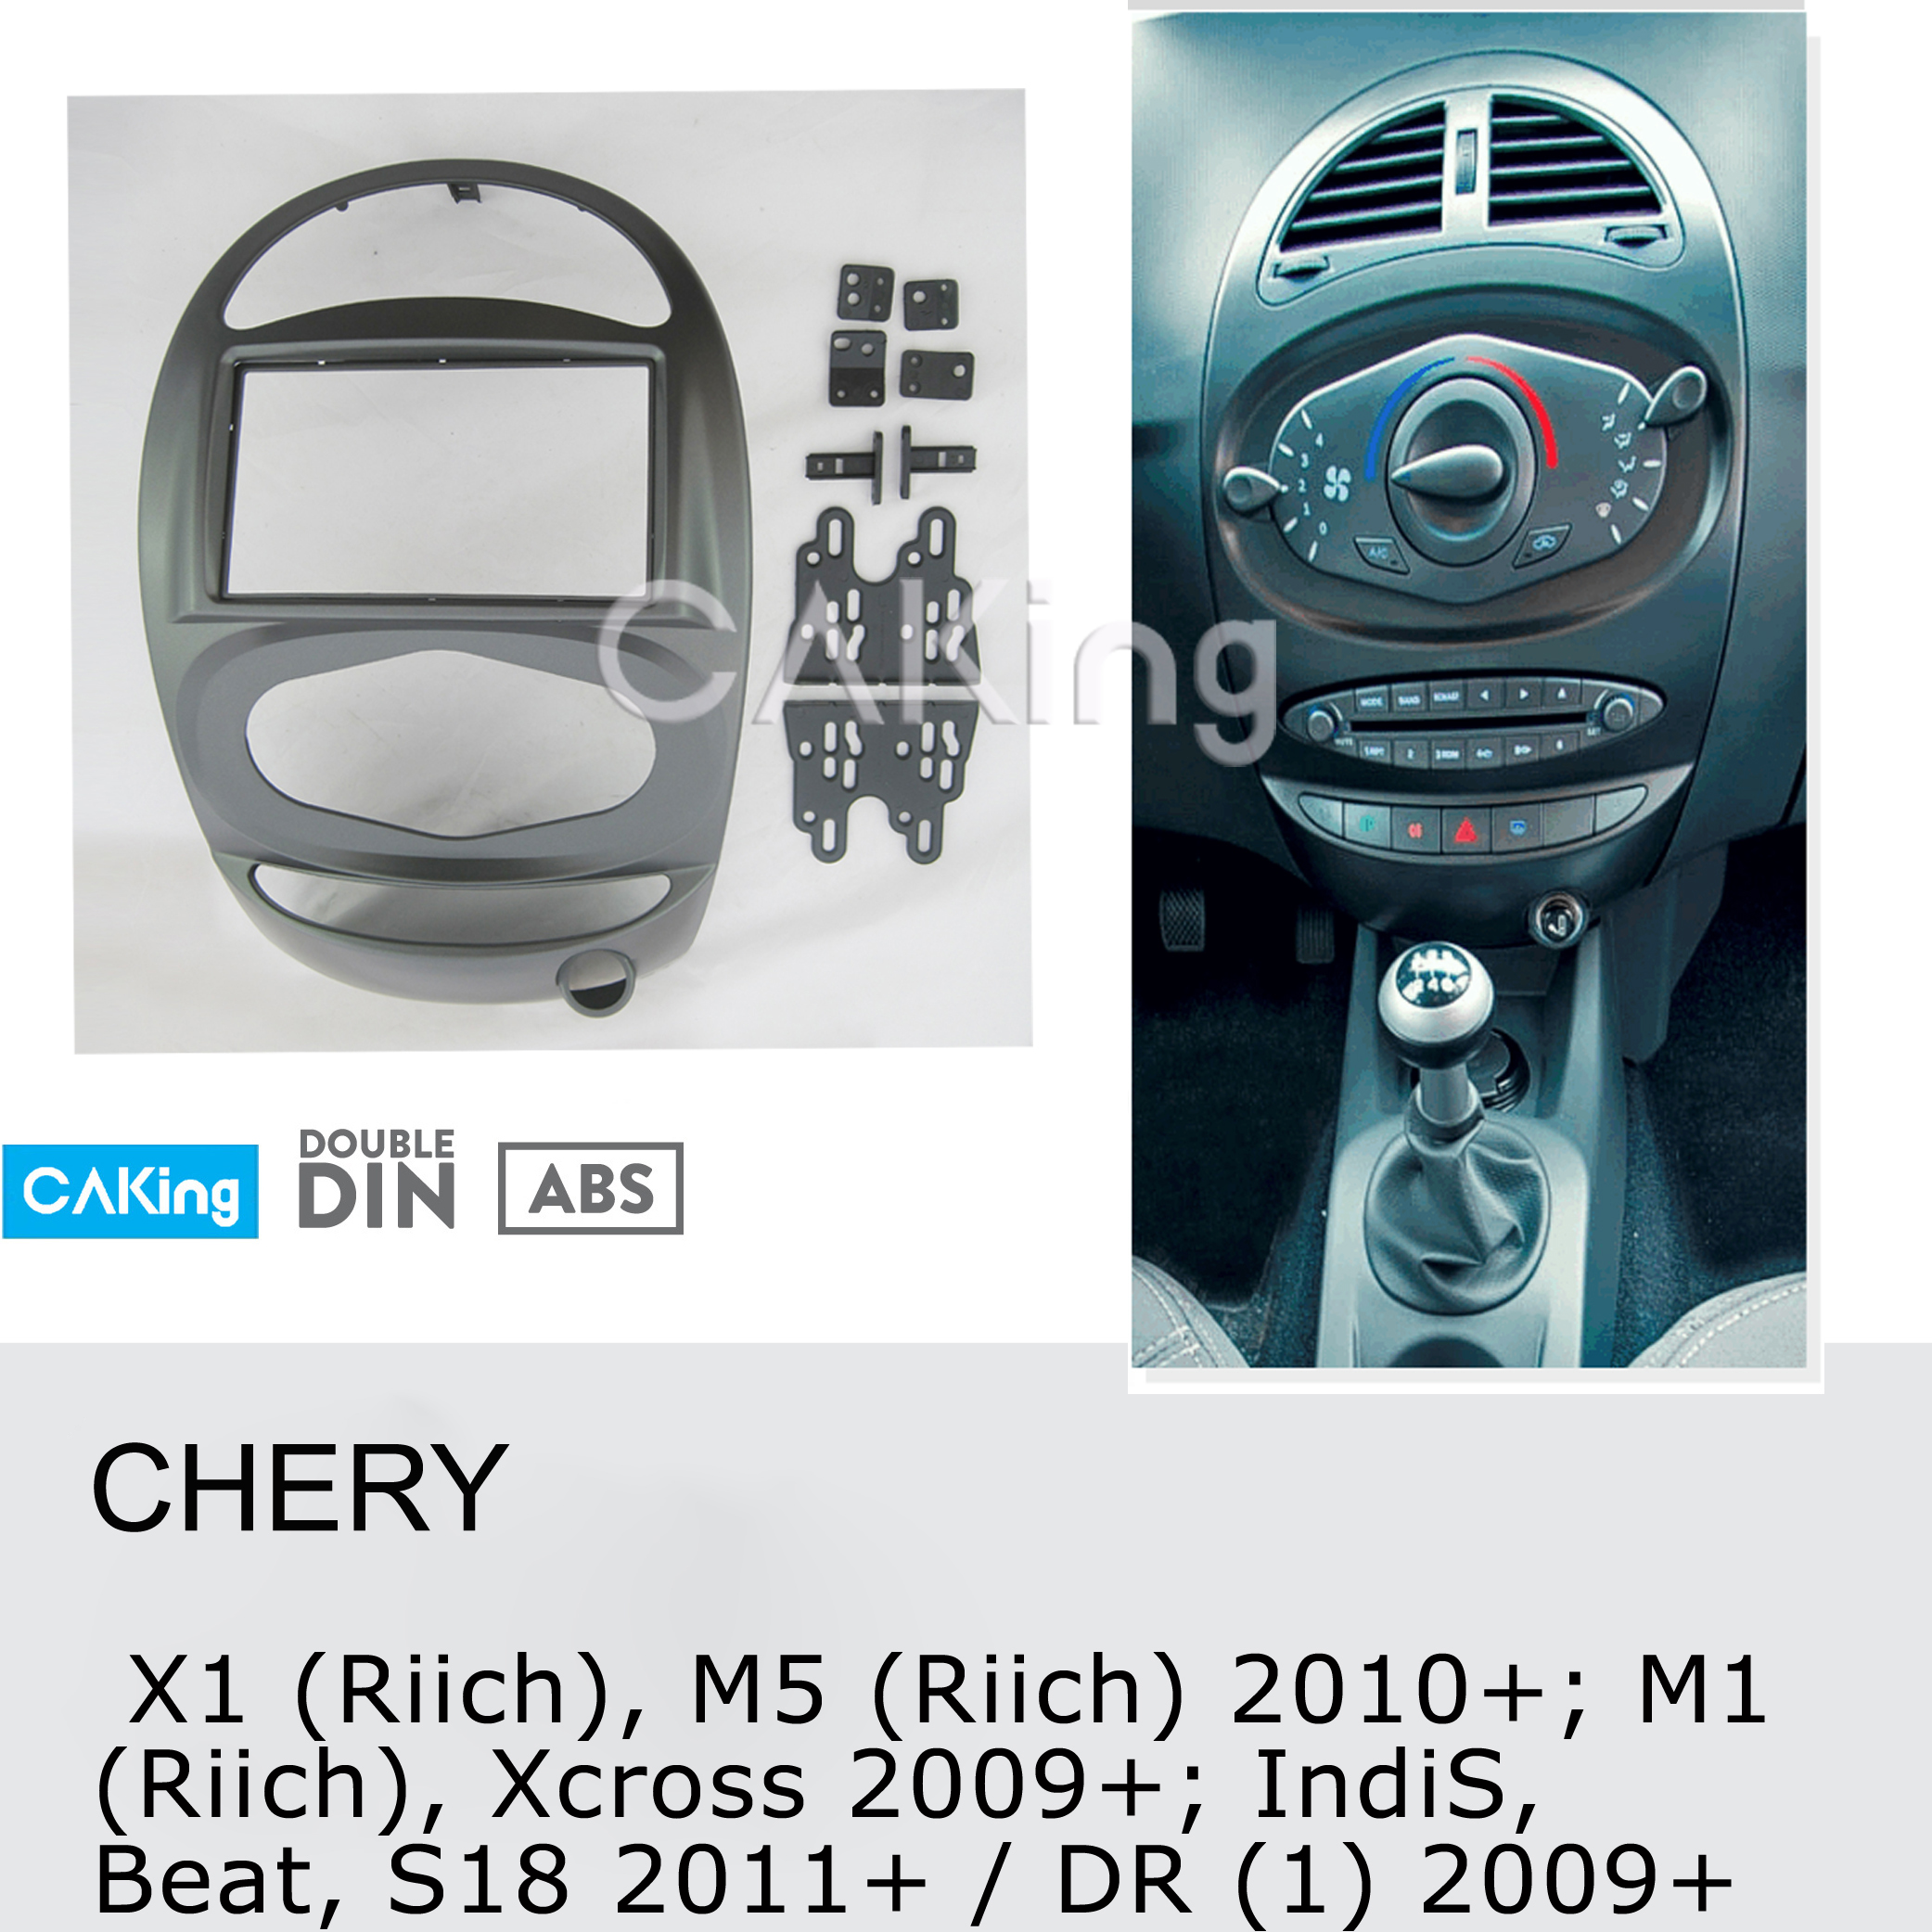 Panel For CHERY X1 (Riich), M5 (Riich) 2010+; M1 (Riich), Xcross 2009+; IndiS, Beat, S18 2011+ / DR (1) 2009+ Install kit Fascia-in Fascias from Automobiles & Motorcycles    1